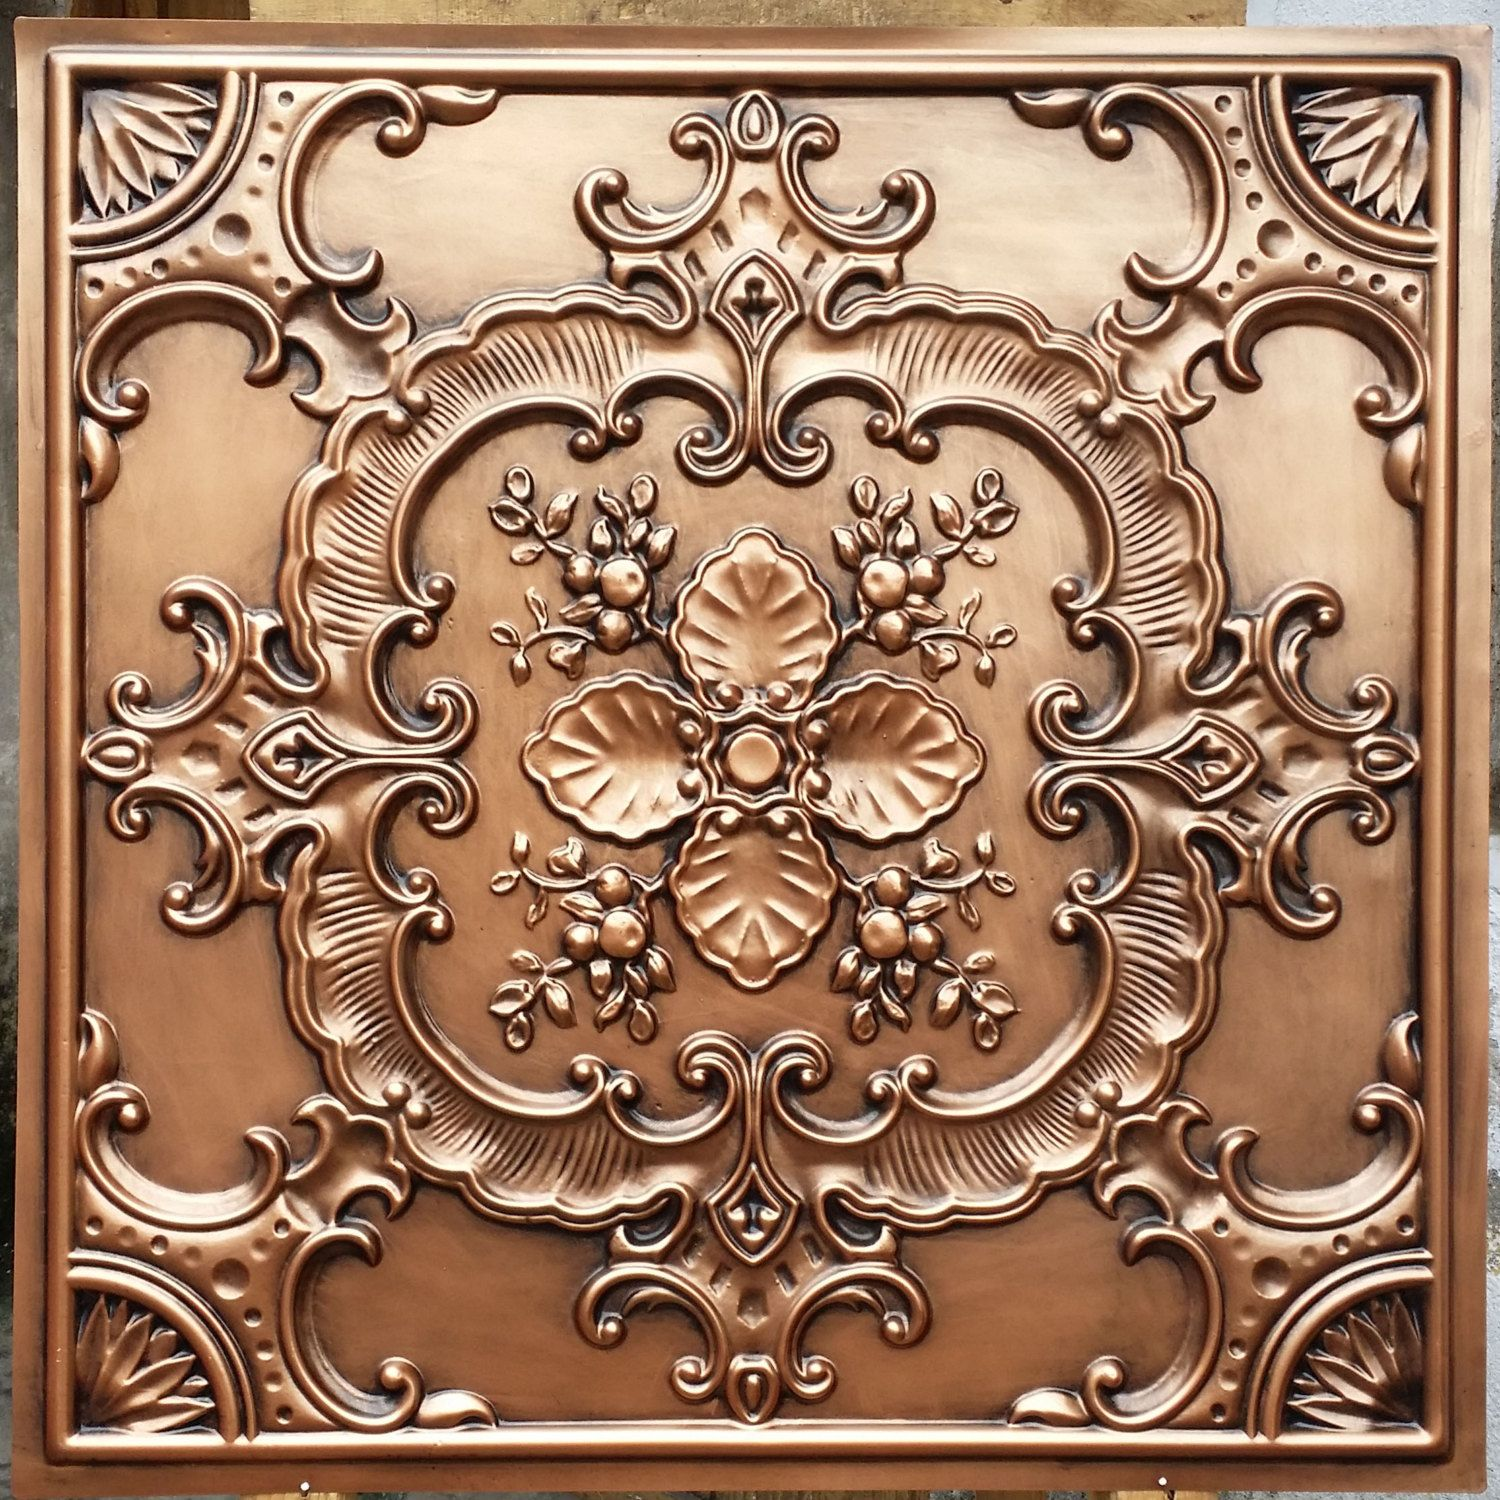 pl19 faux tin antique copper ceiling tiles 3d embossed photography background panels boards 10tileslot